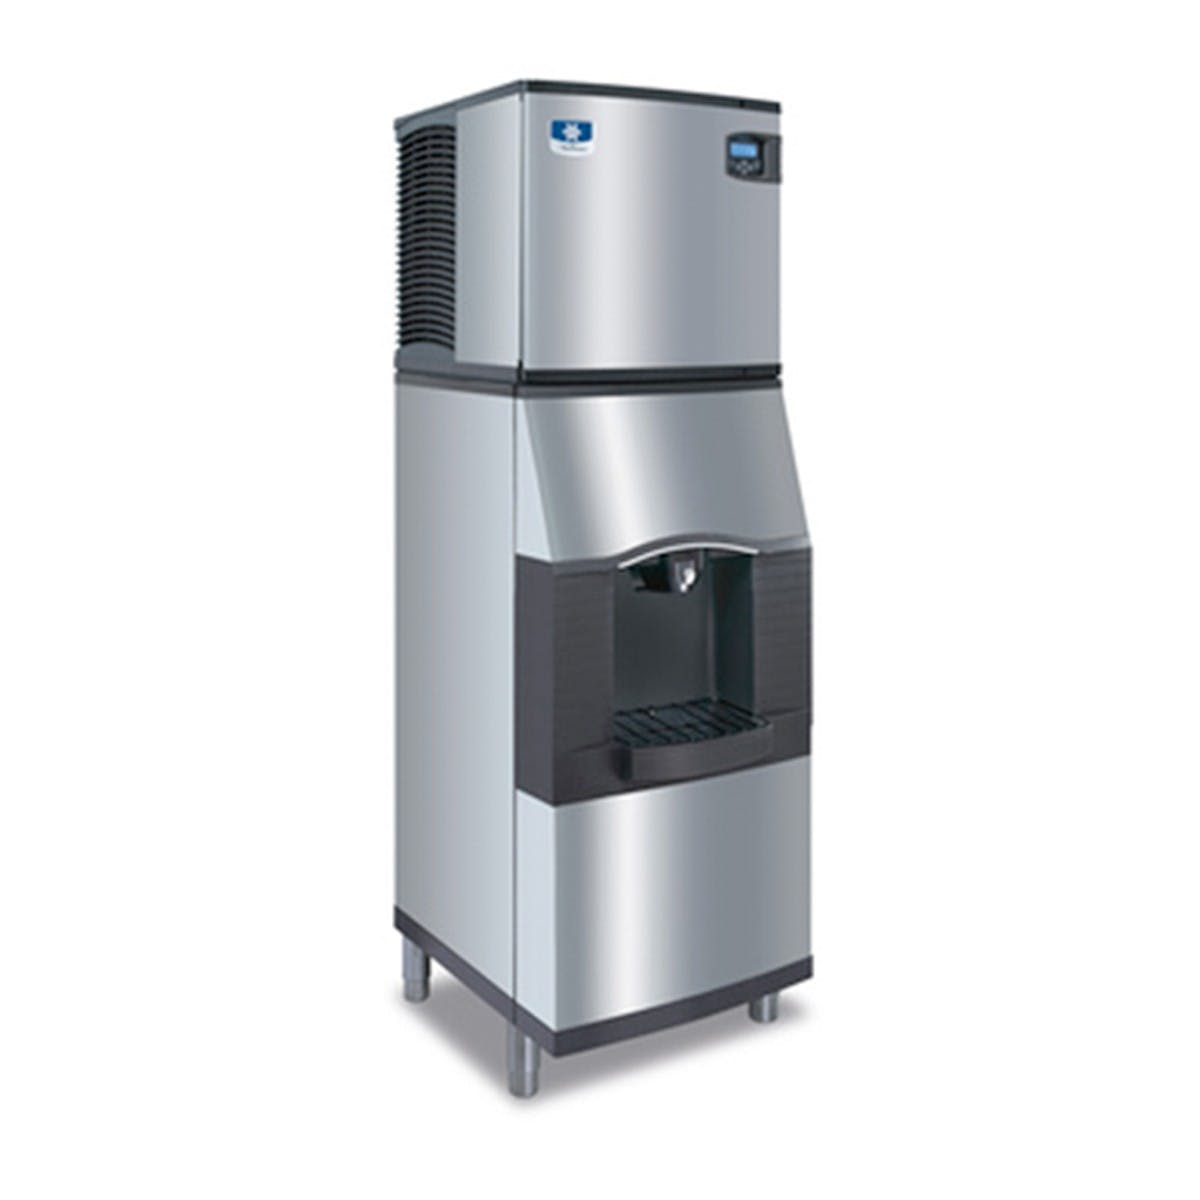 Manitowoc Ice SFA-191 120 Lb Vending Style Ice and Water Dispenser Ice dispenser sold by Mission Restaurant Supply